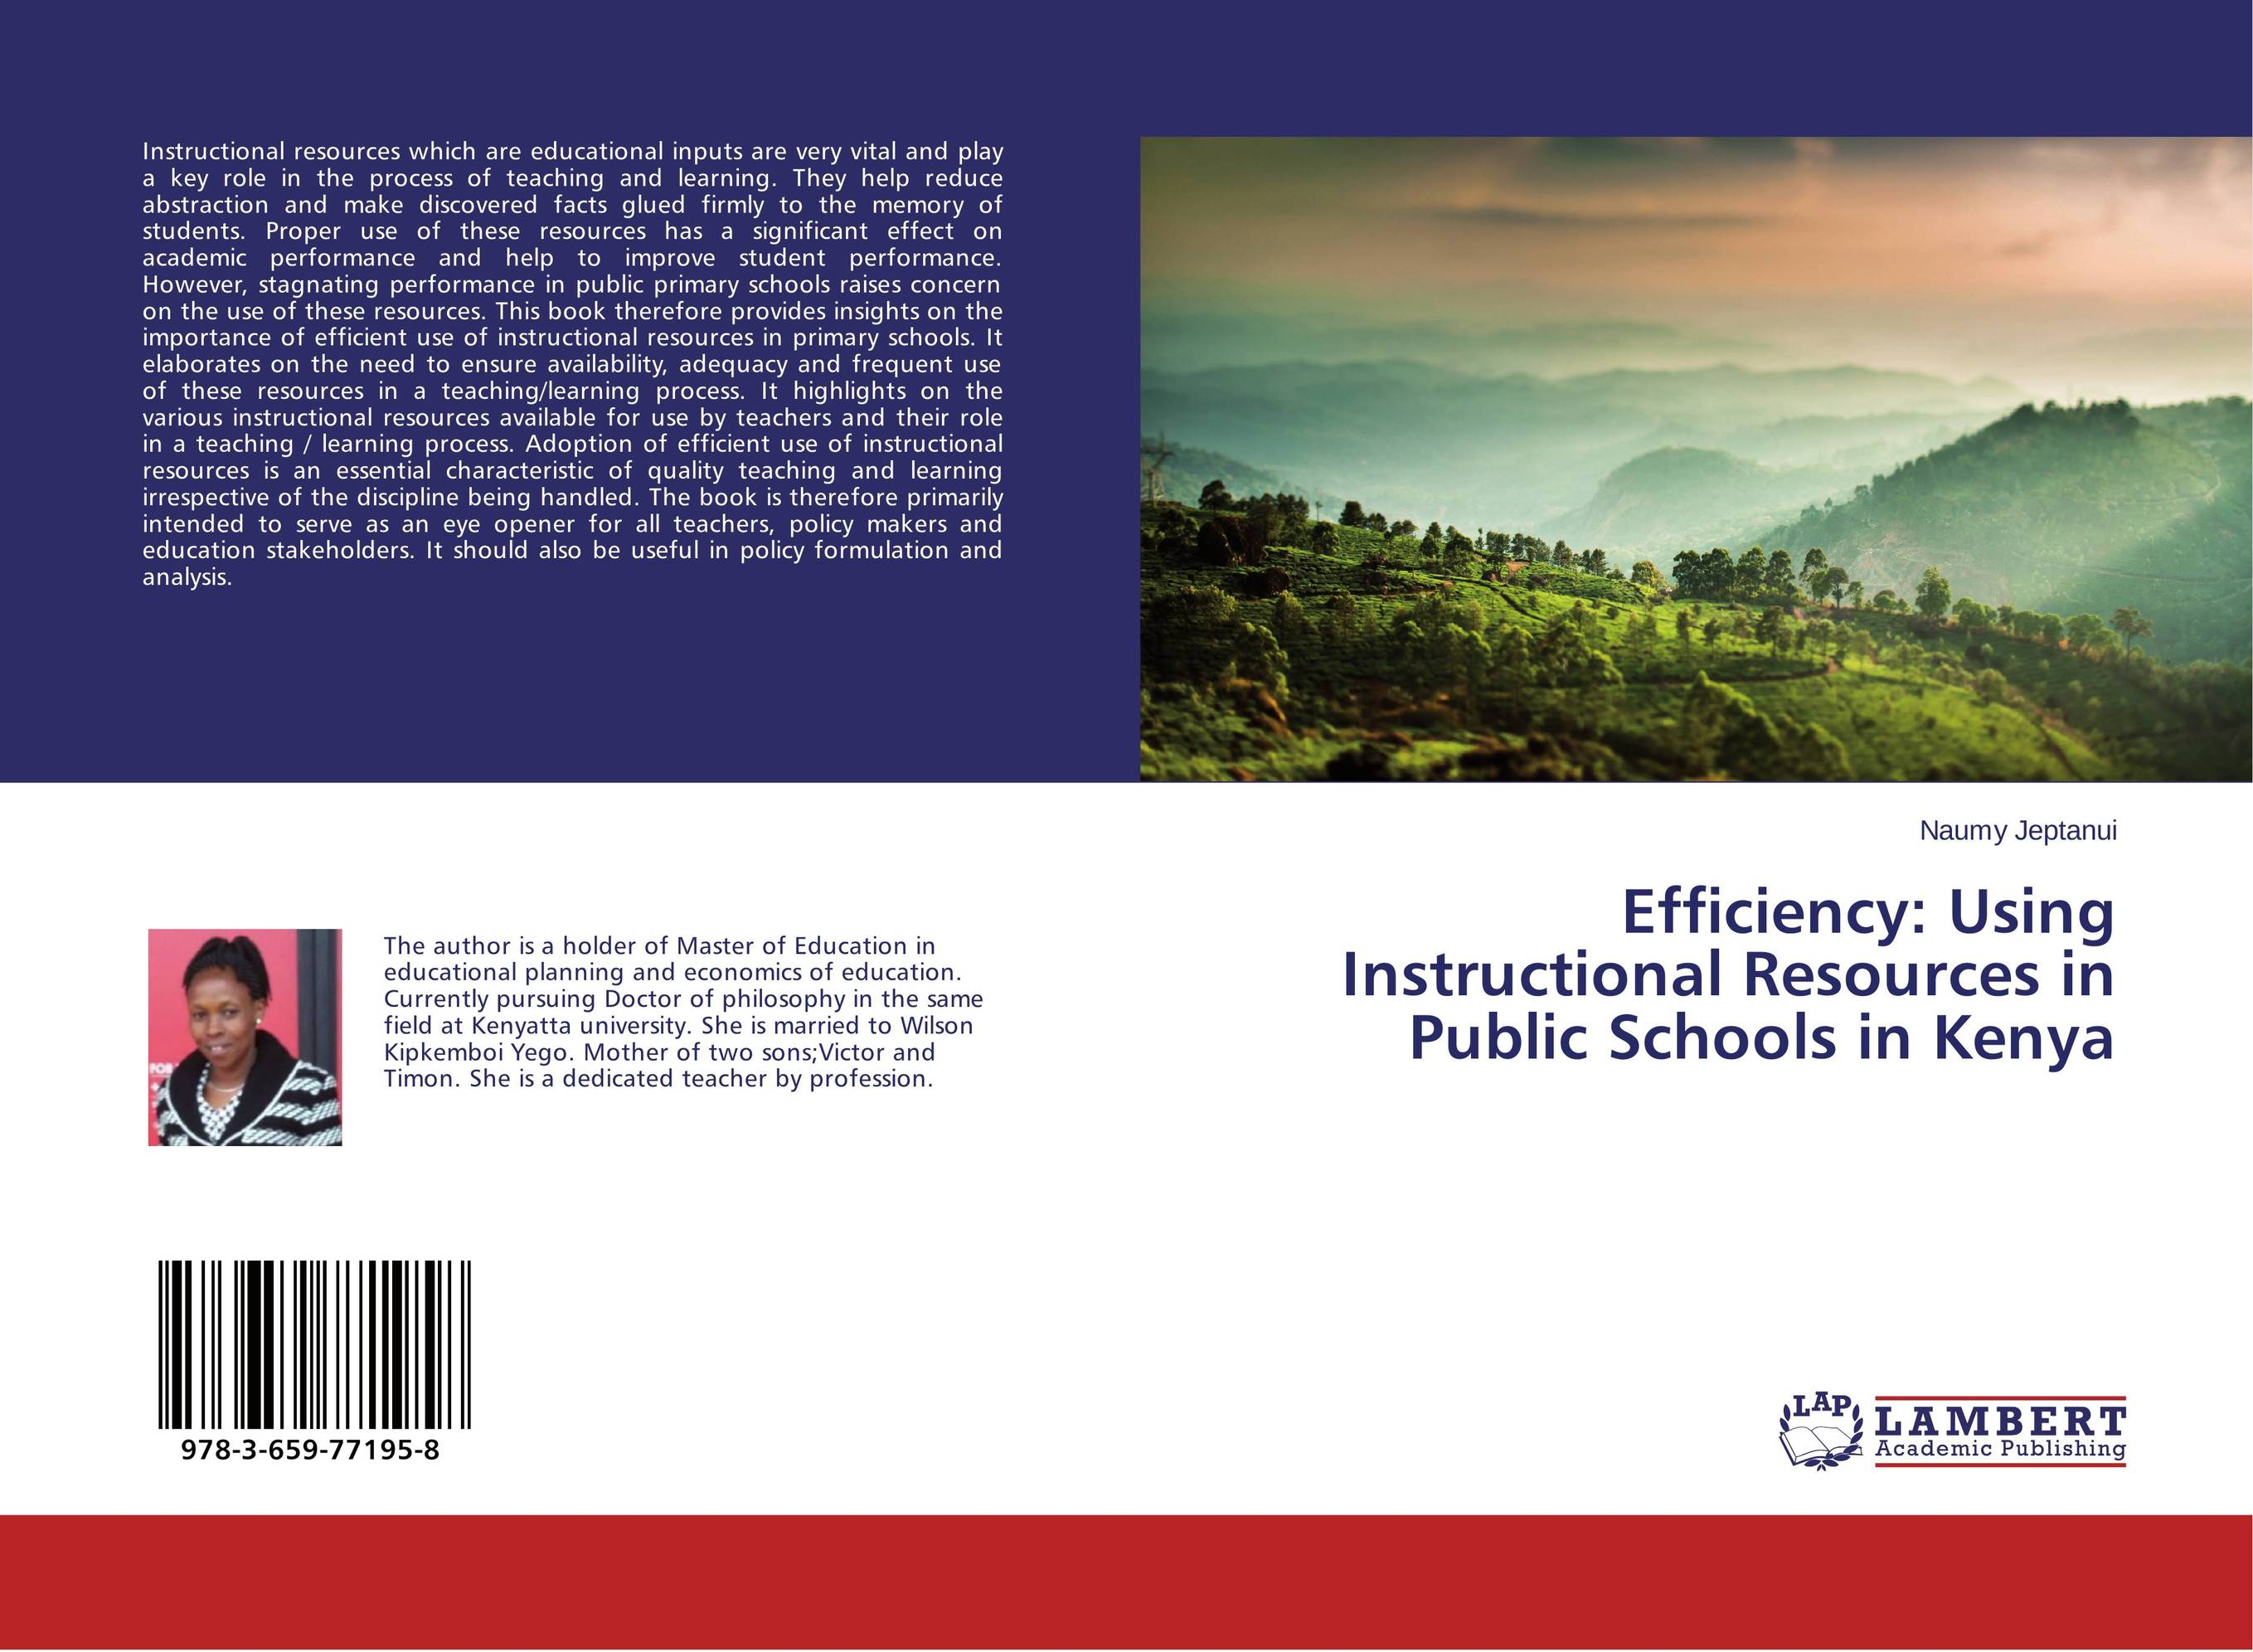 купить Efficiency: Using Instructional Resources in Public Schools in Kenya недорого